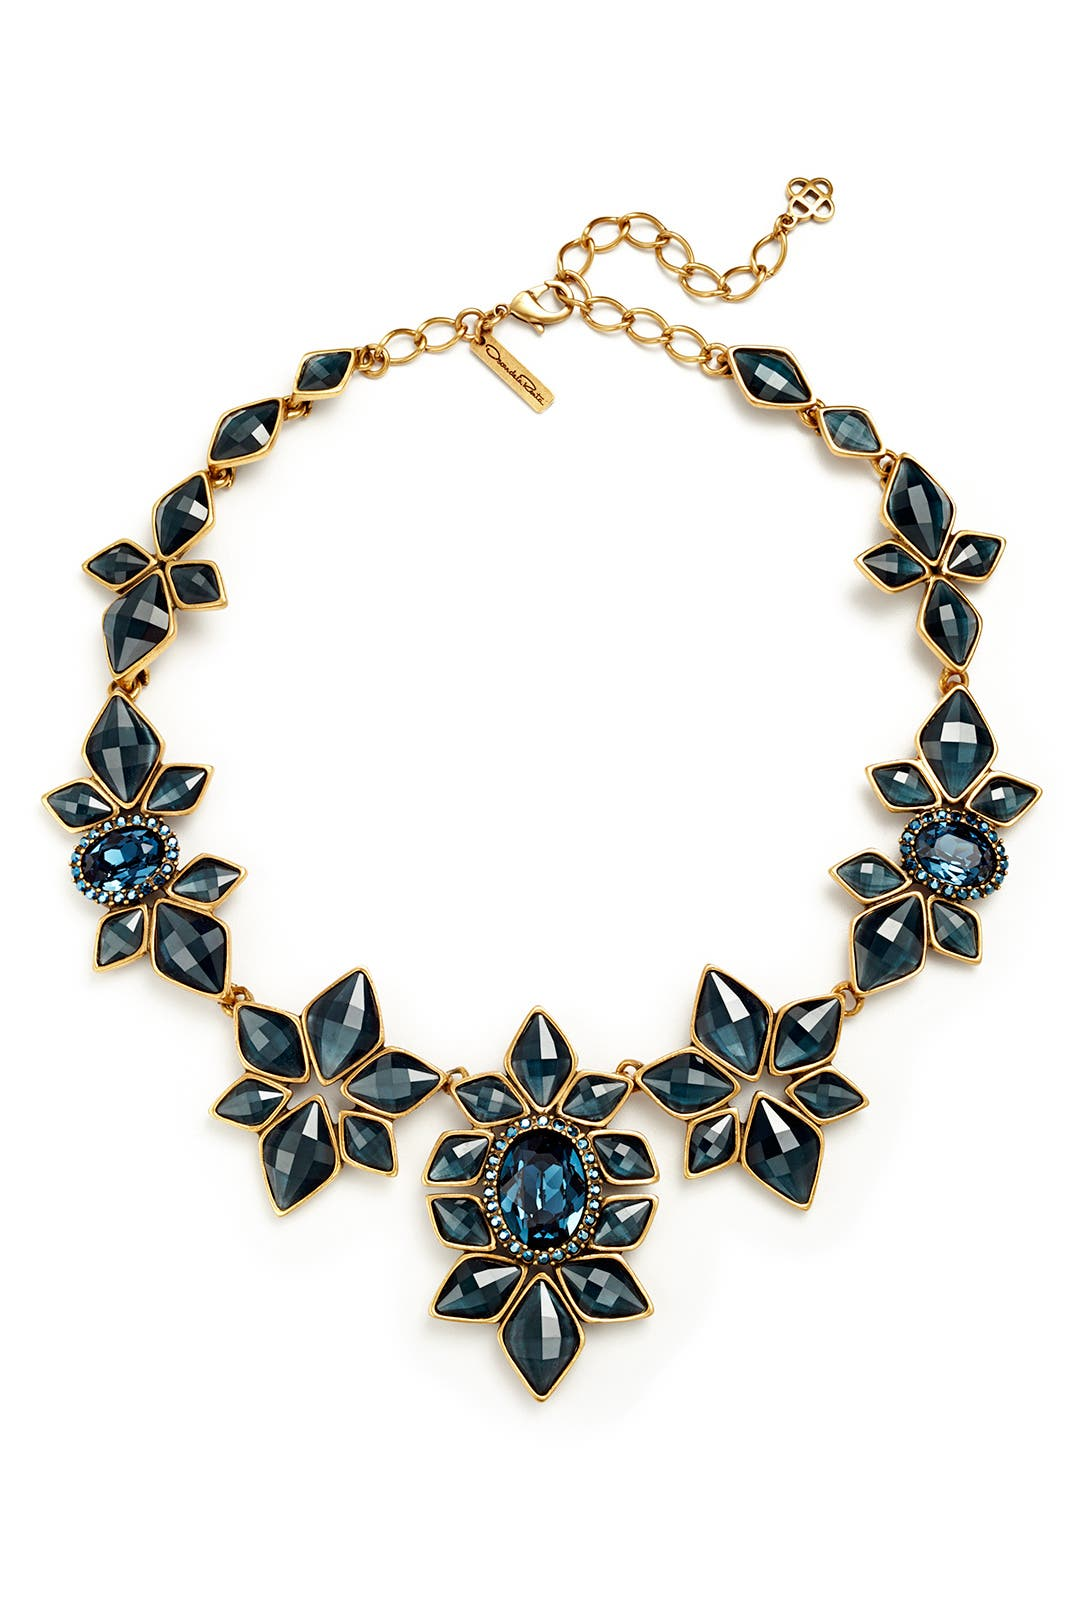 Nightshade Necklace by Oscar de la Renta